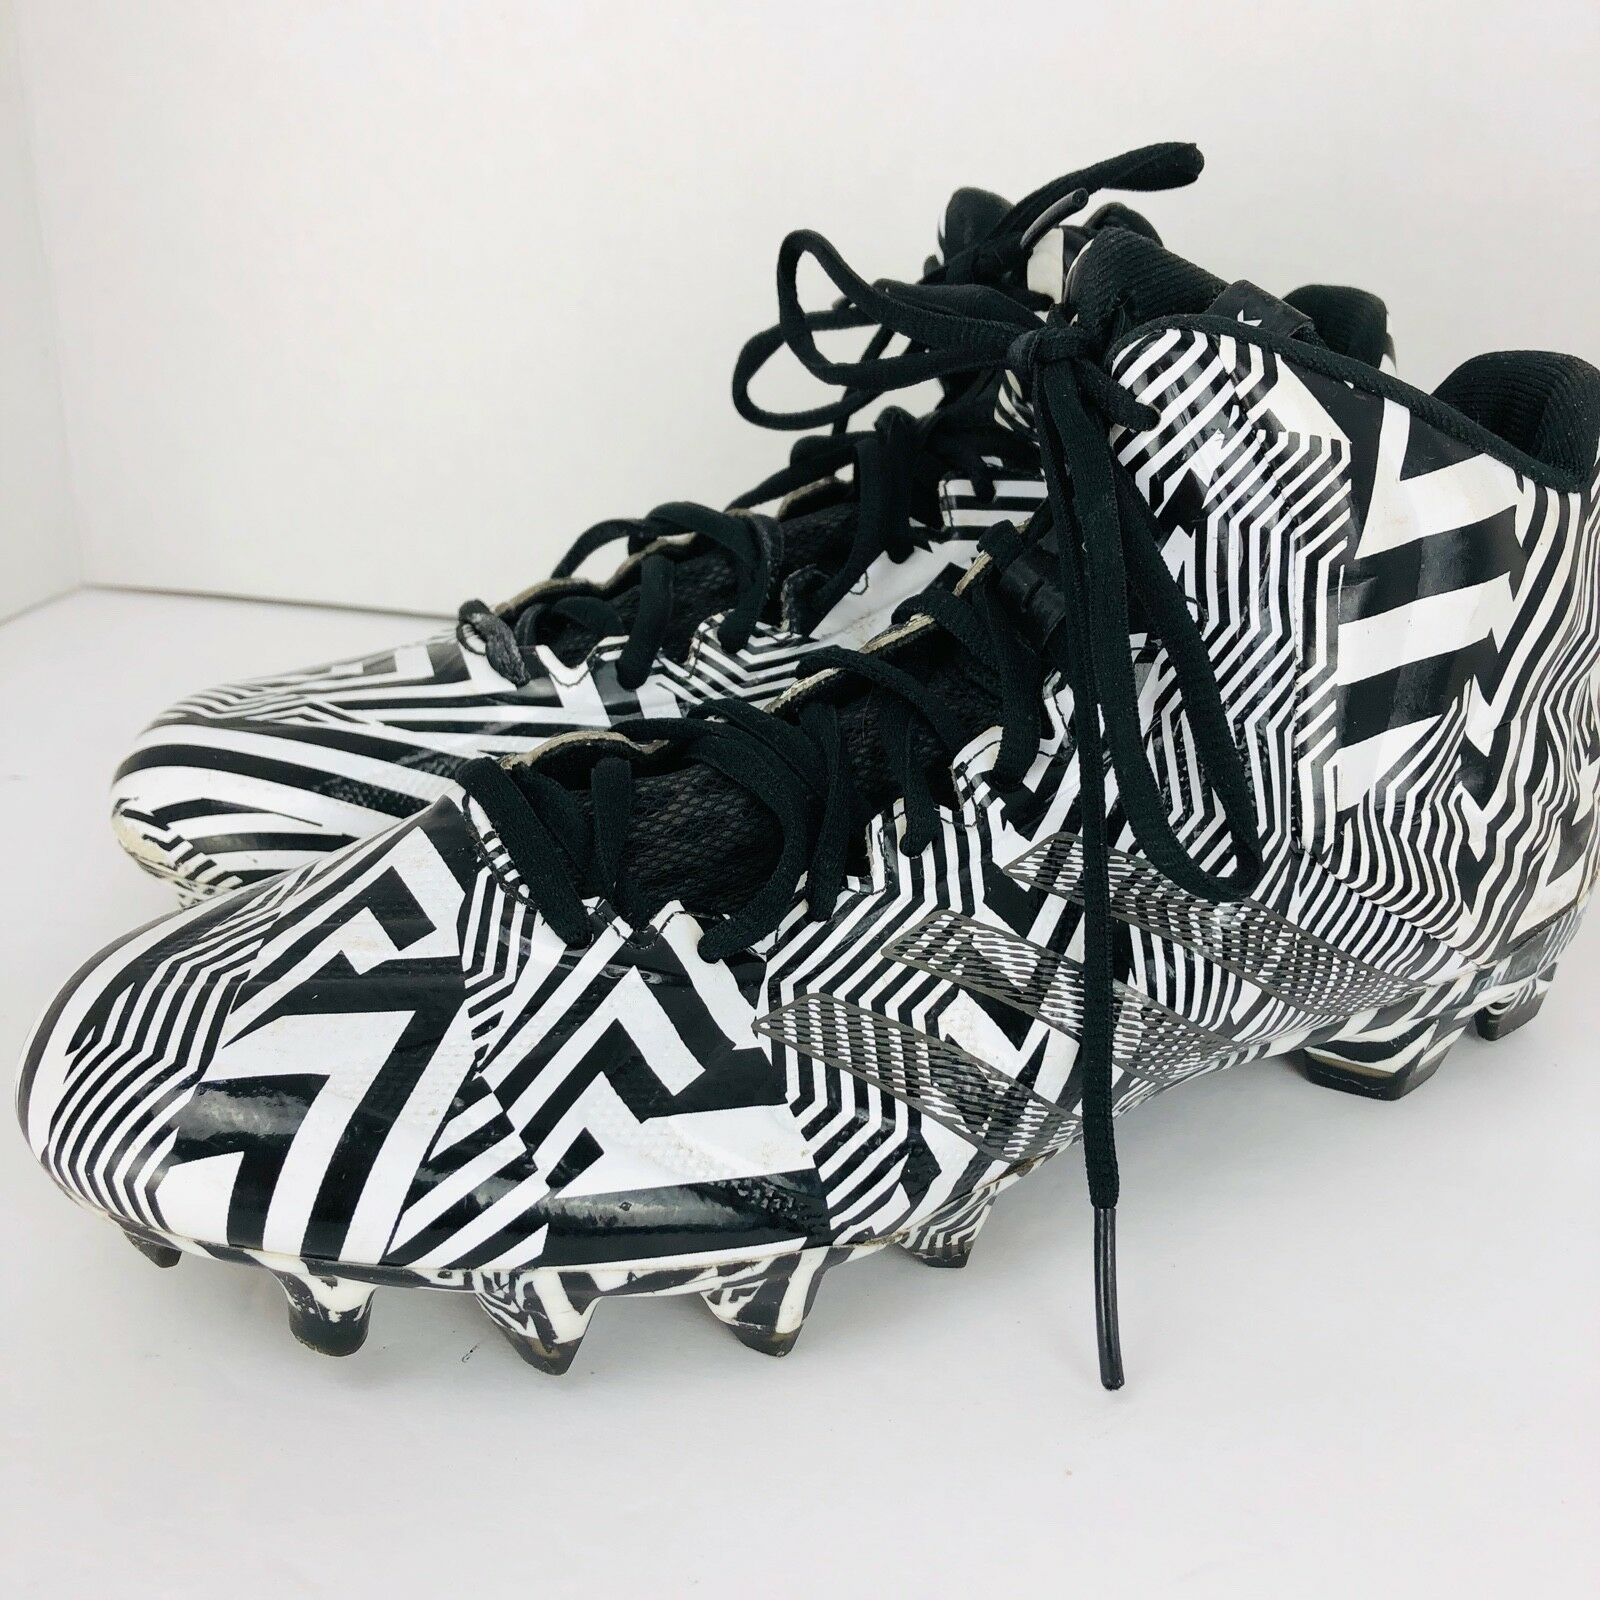 huge discount 313ad 864a5 ADIDAS Mens Football Soccer Cleats Black and 50 similar items. 57